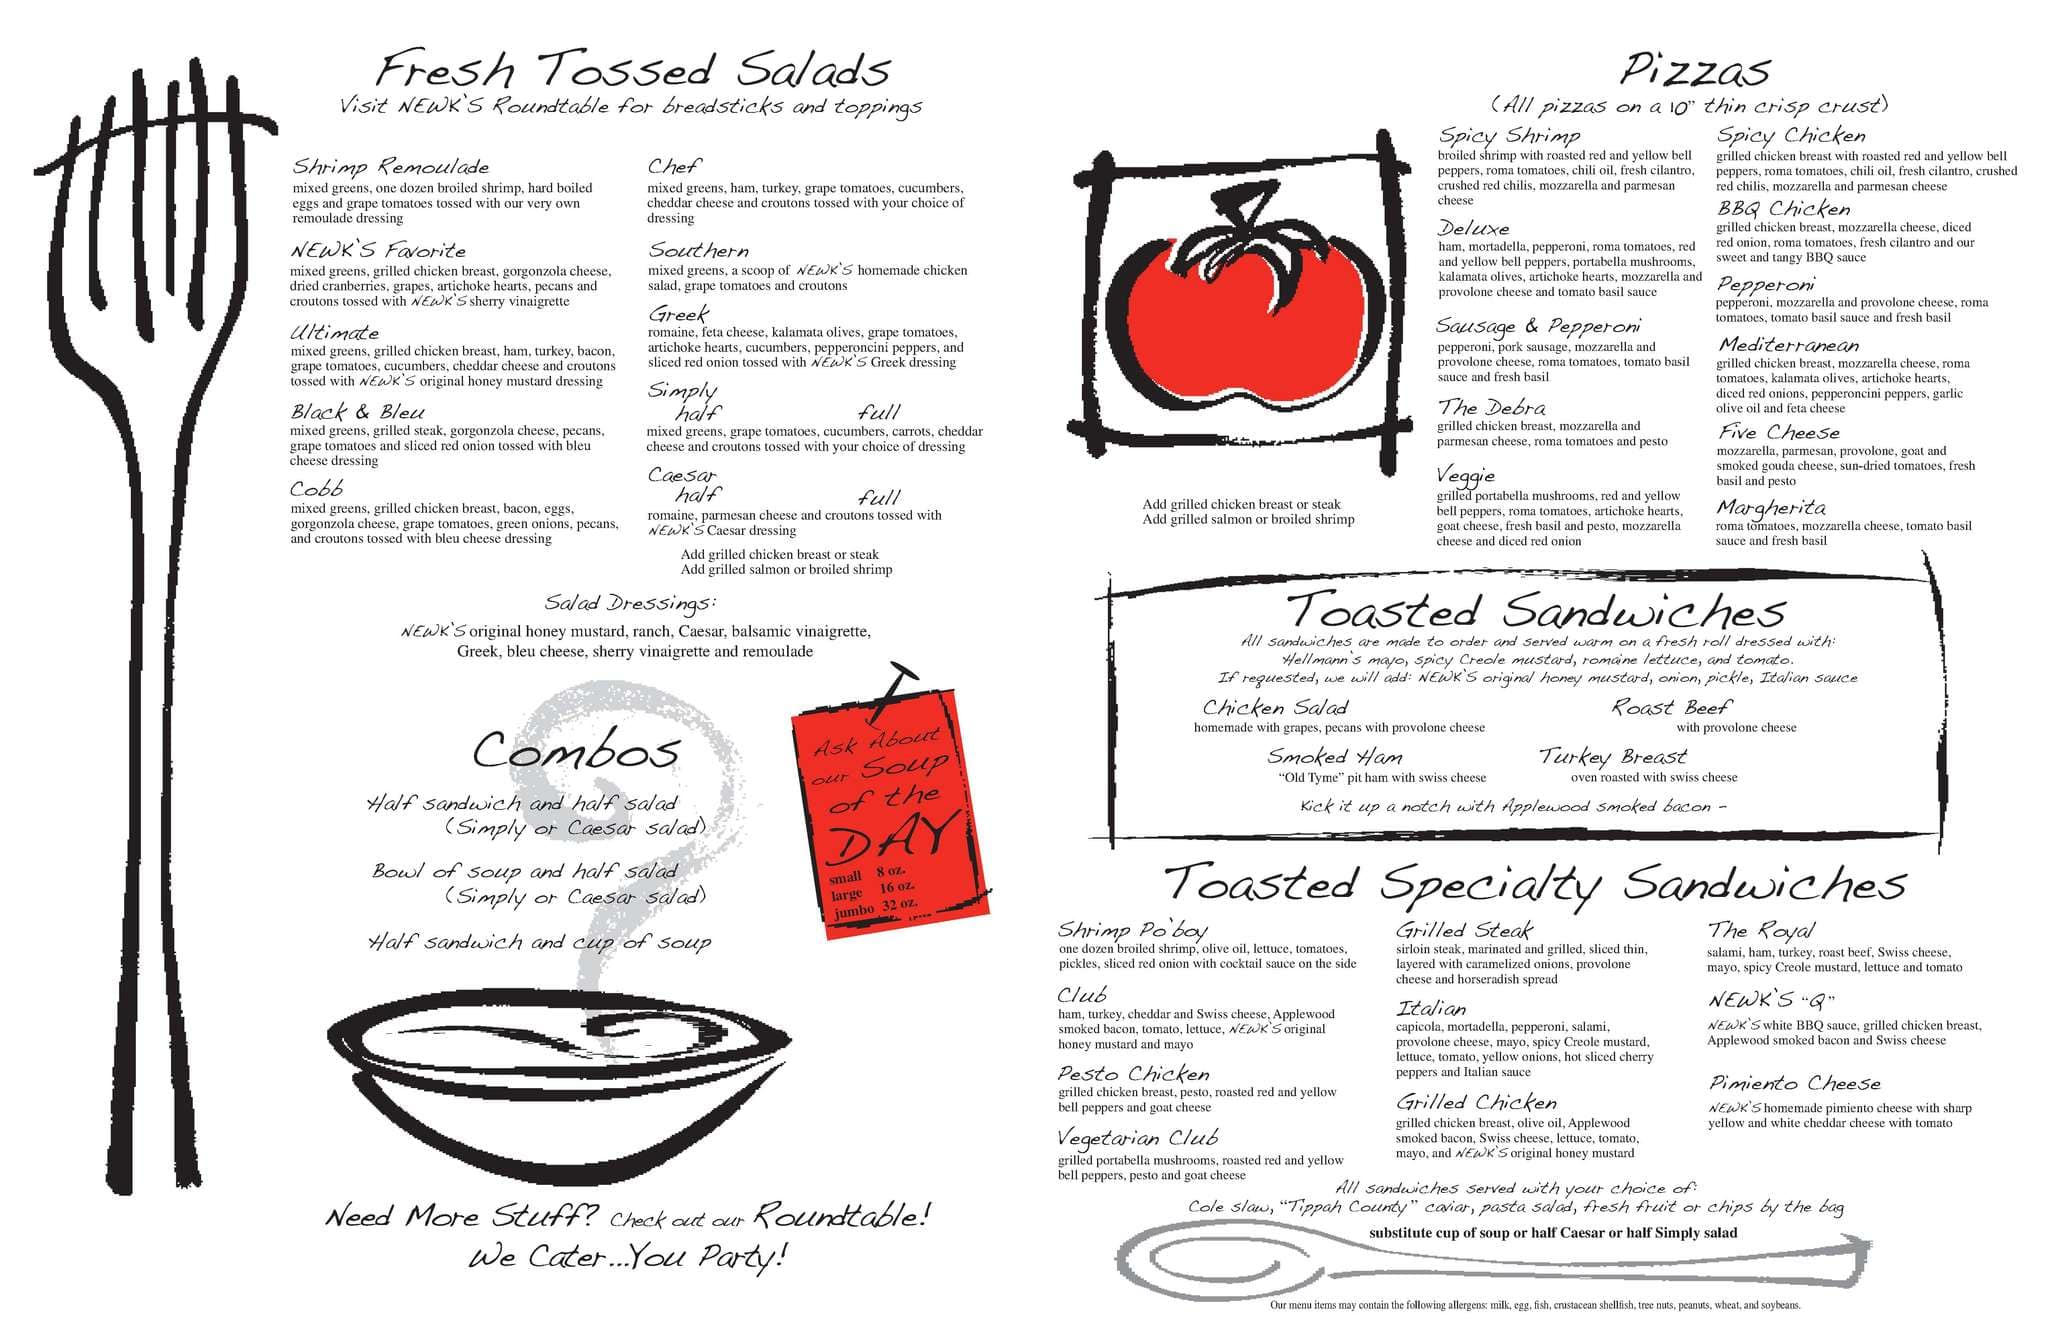 photo about Newks Printable Menu referred to as Menu at Newks Eatery pizzeria, Memphis, Poplar Ave